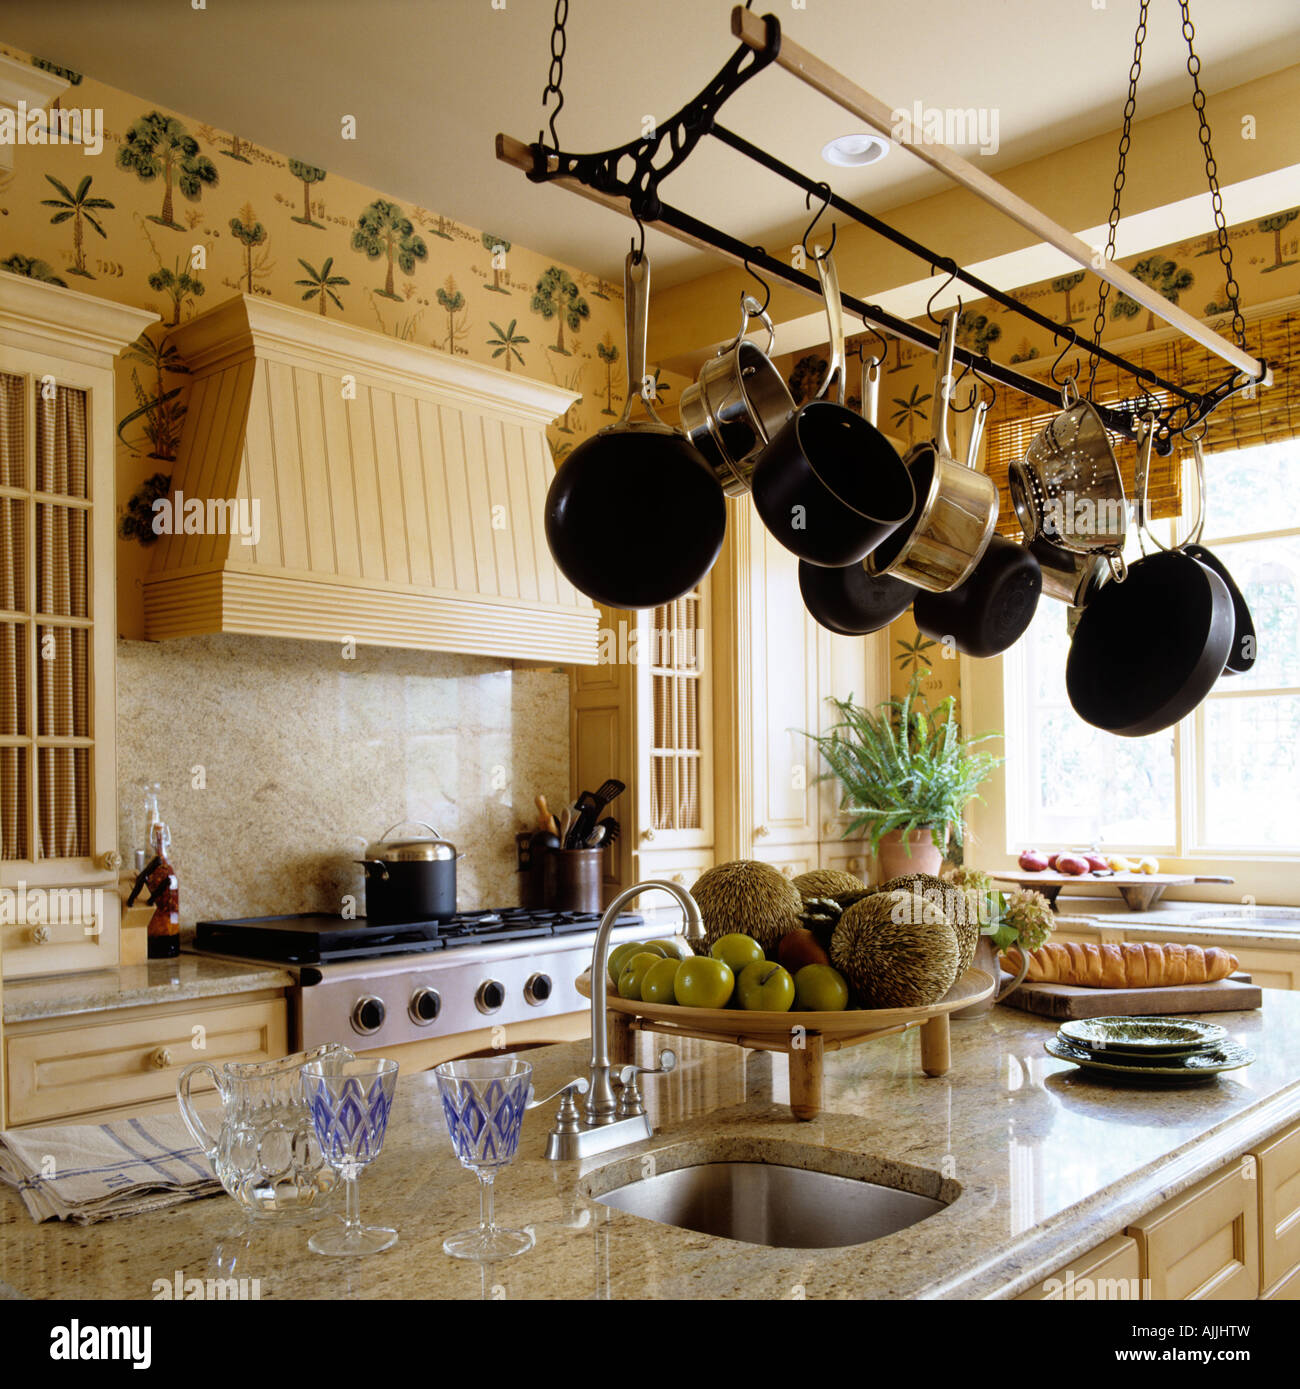 Kitchen With Marble Top Surface And Saucepans Hung From